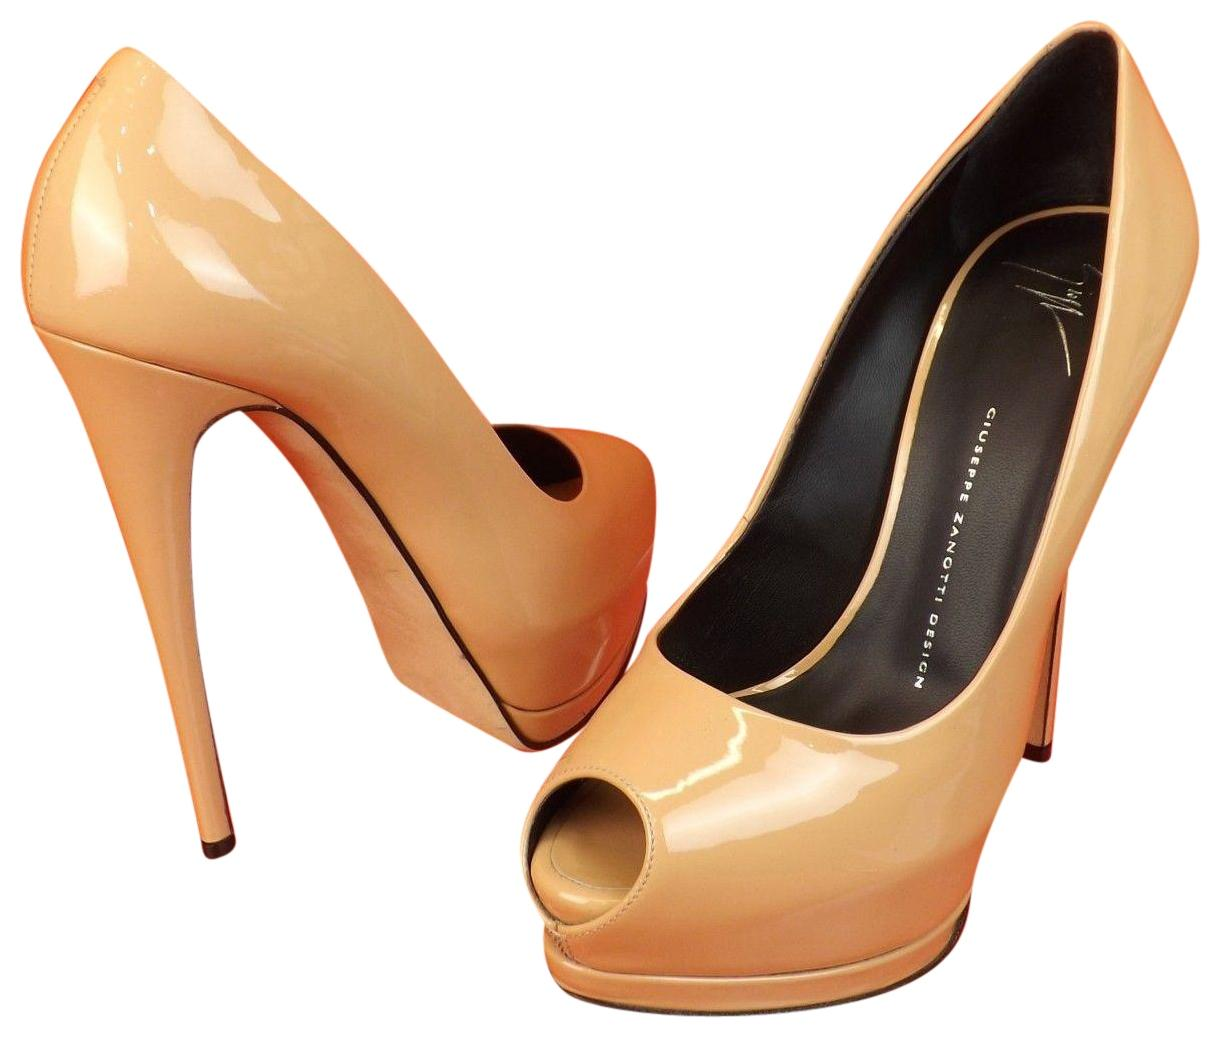 Giuseppe Zanotti Woman Patent-leather Pumps Sand Size 40 Giuseppe Zanotti Clearance Get Authentic Cheap Sale Best Store To Get 81oG4Z